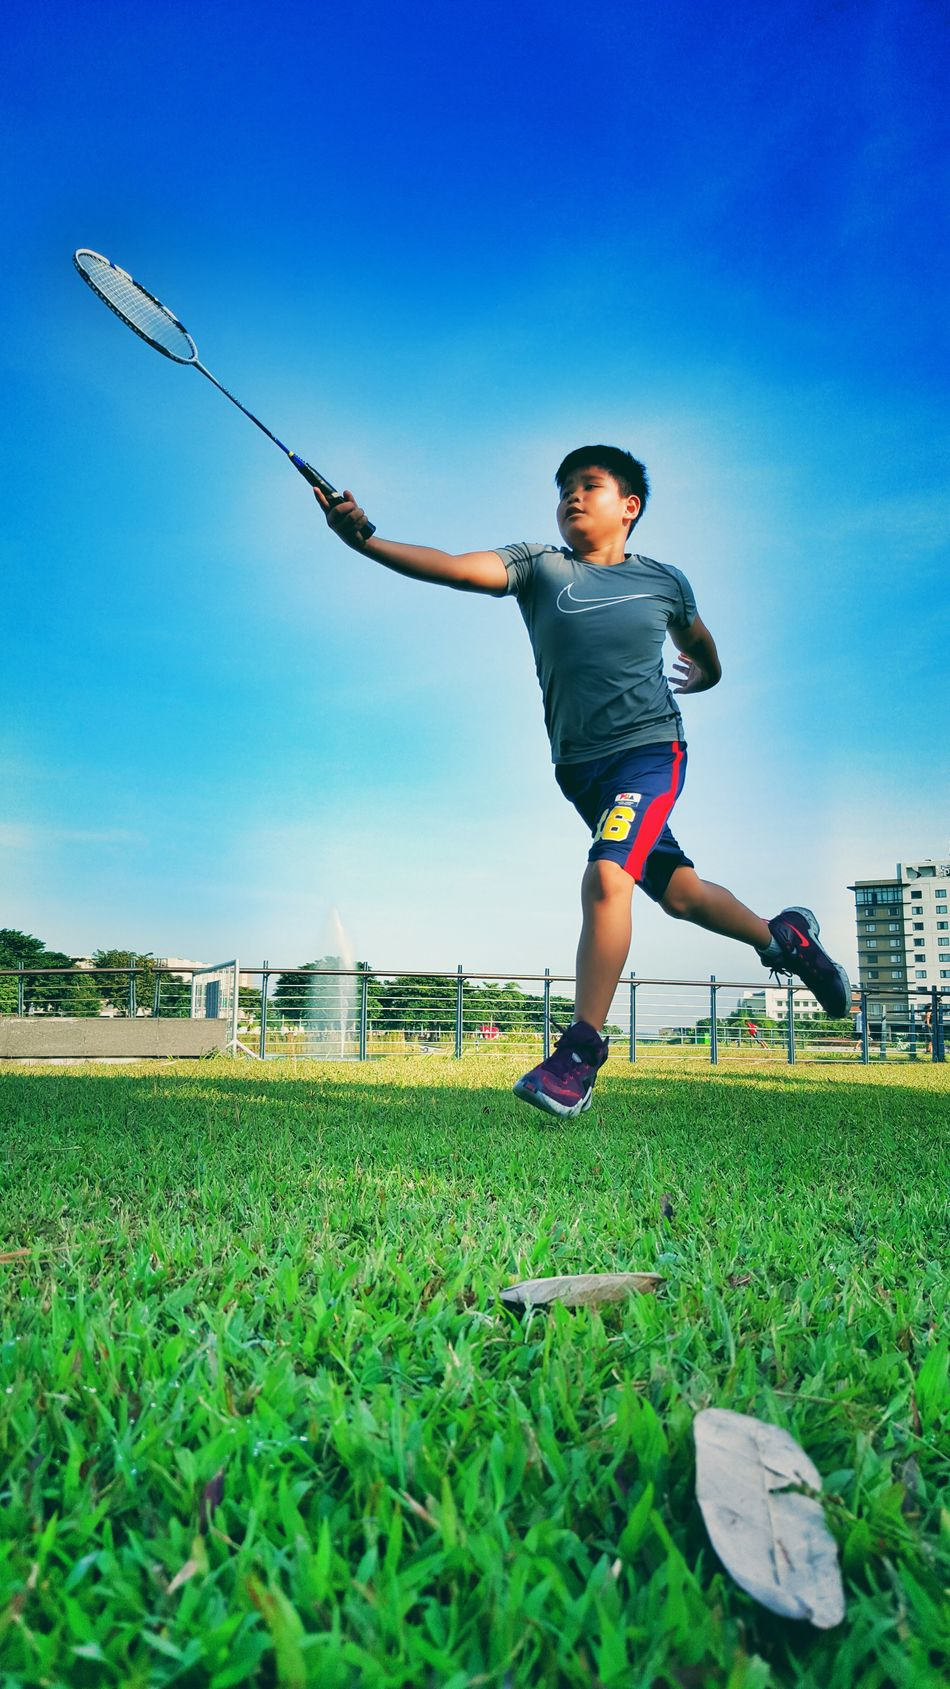 People And Places Playing Badminton Nuvaliph Nuvali, Laguna Childhood Leisure Activity Clear Sky Nike, Just Do It Nike Shoes Grass Fun Morning Exercise Taking Pictures Eyeem Photography EyeEm Gallery Eyeem Philippines Nice Weather Taking Photos Picoftheday People People Photography People Of EyeEm